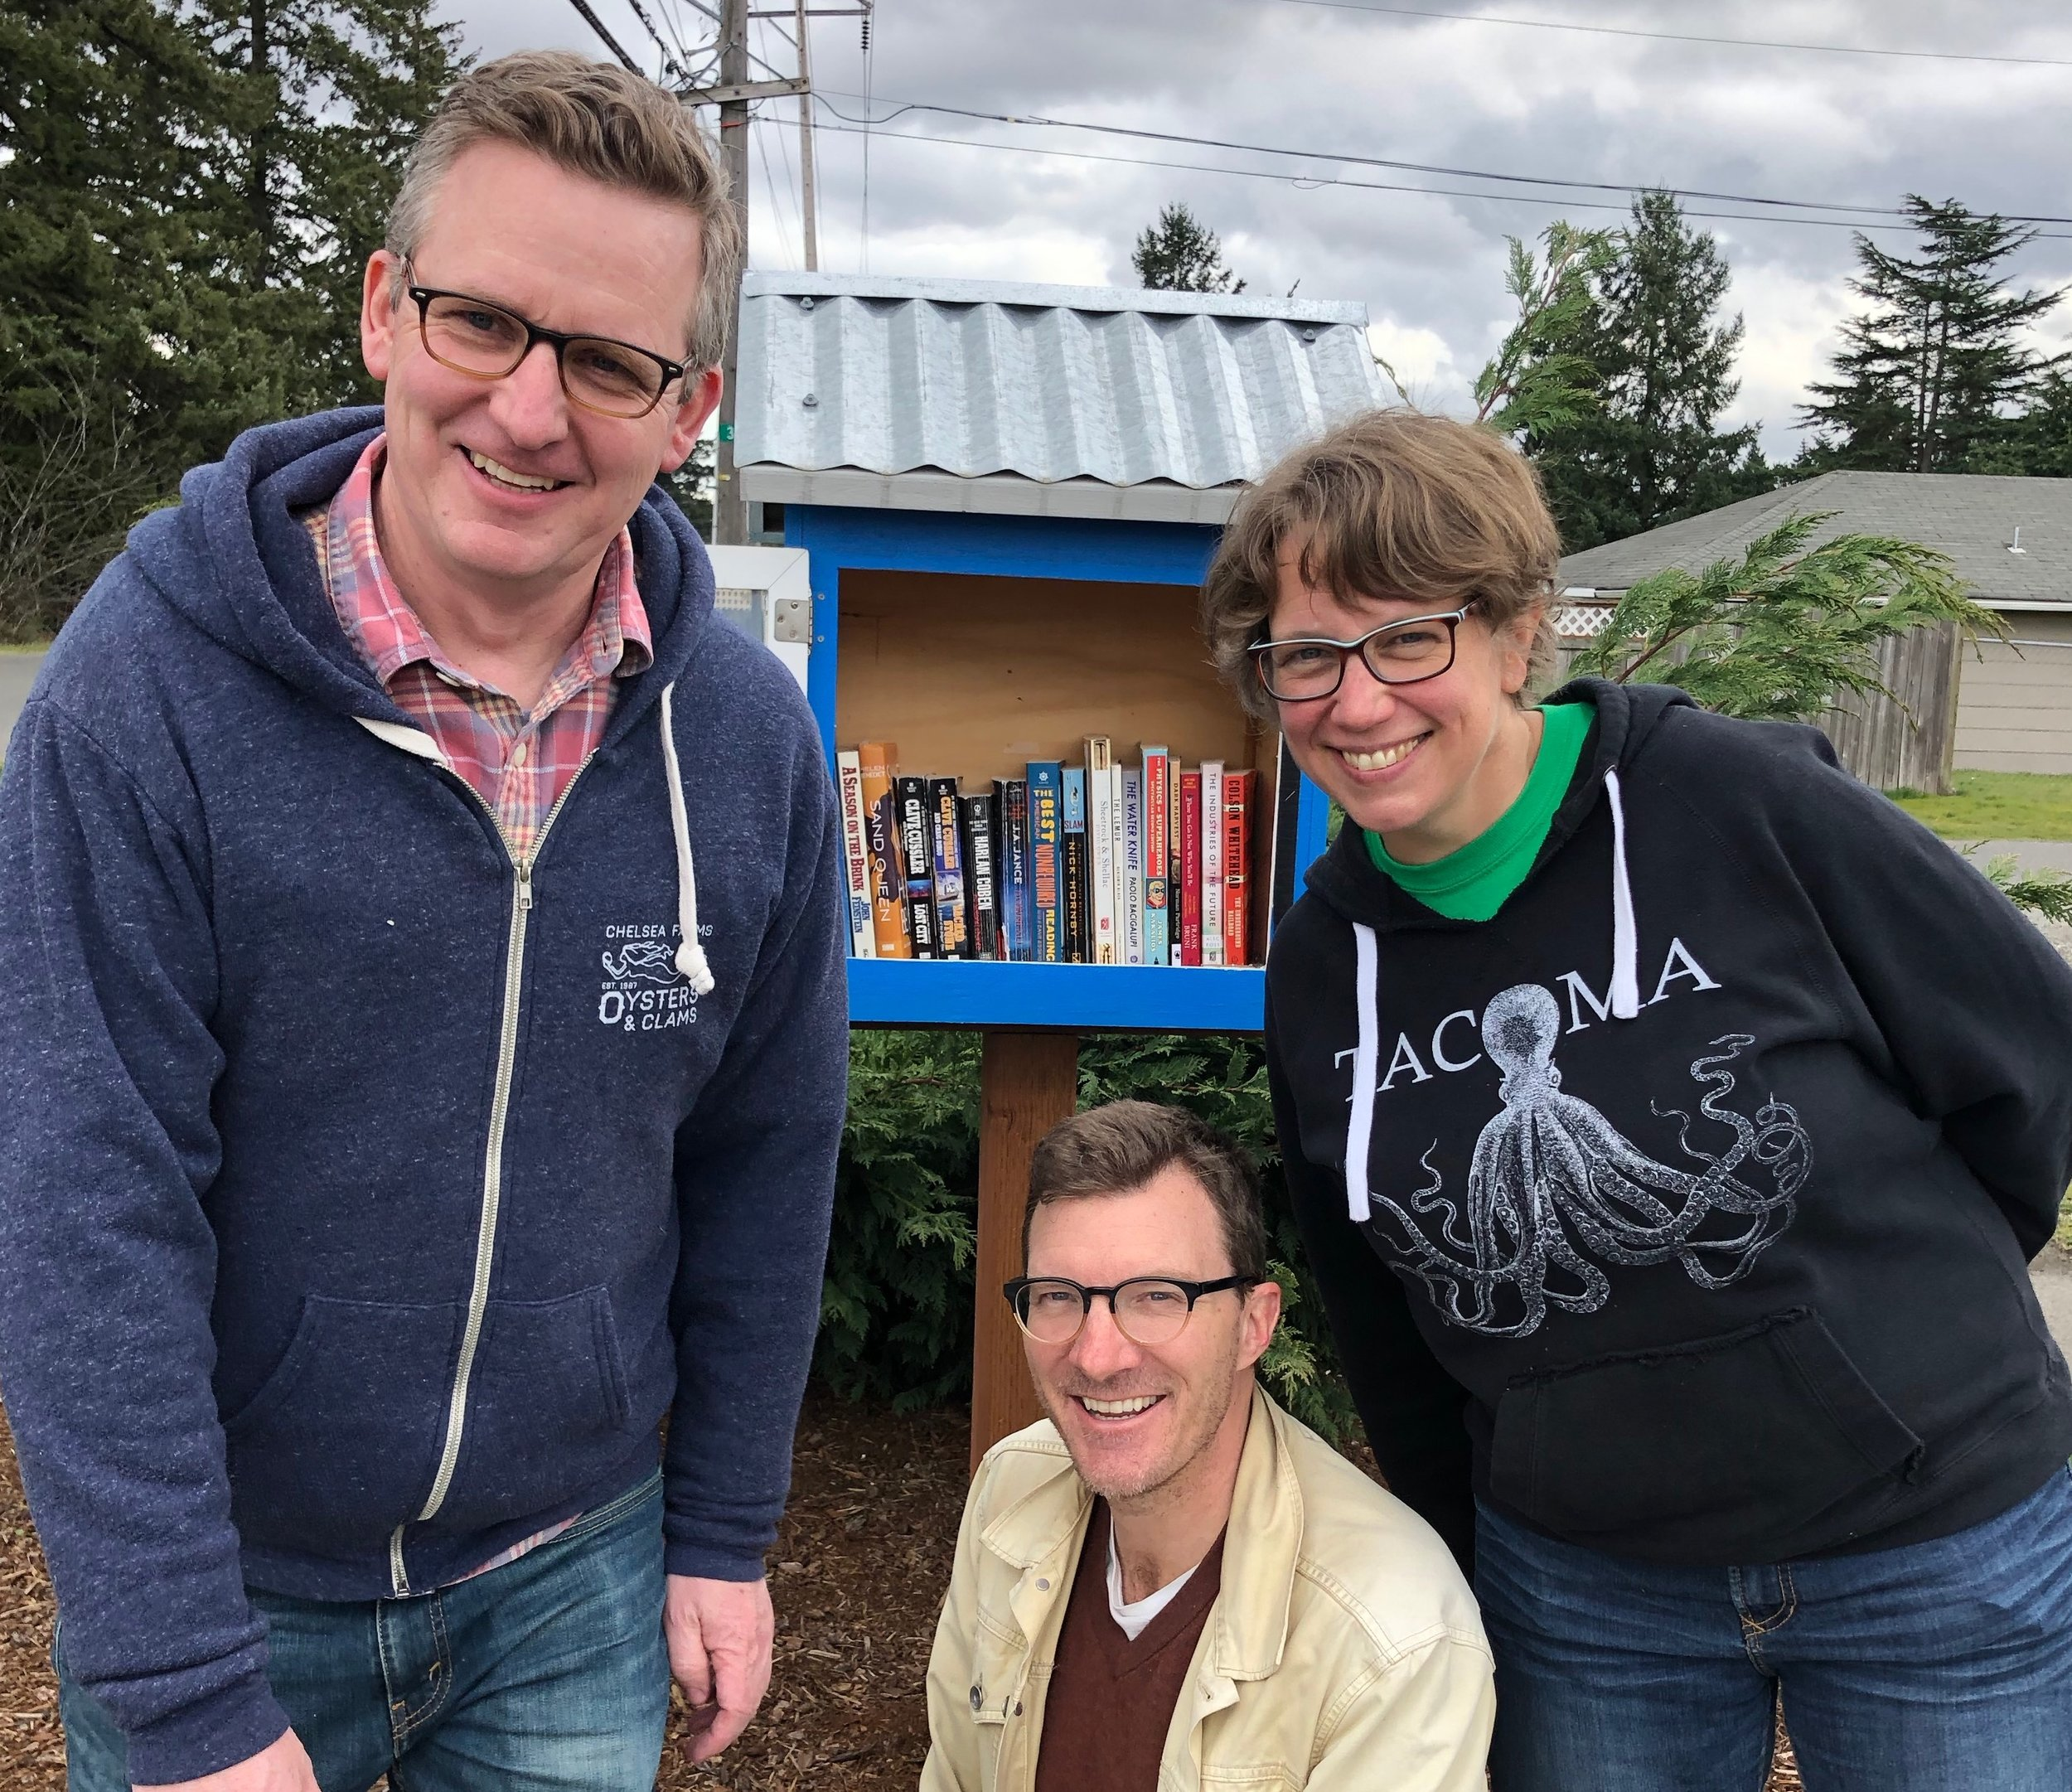 Meet Michelle Douglas of the Emergency Food Network crew and the Little Free Library they host in a diverse Lakewood neighborhood. Pictured with Michelle are Patrick Moreland and Steve Cathersal who come home to Tacoma to volunteer at the Emergency Food Network with Dr. Jamie!